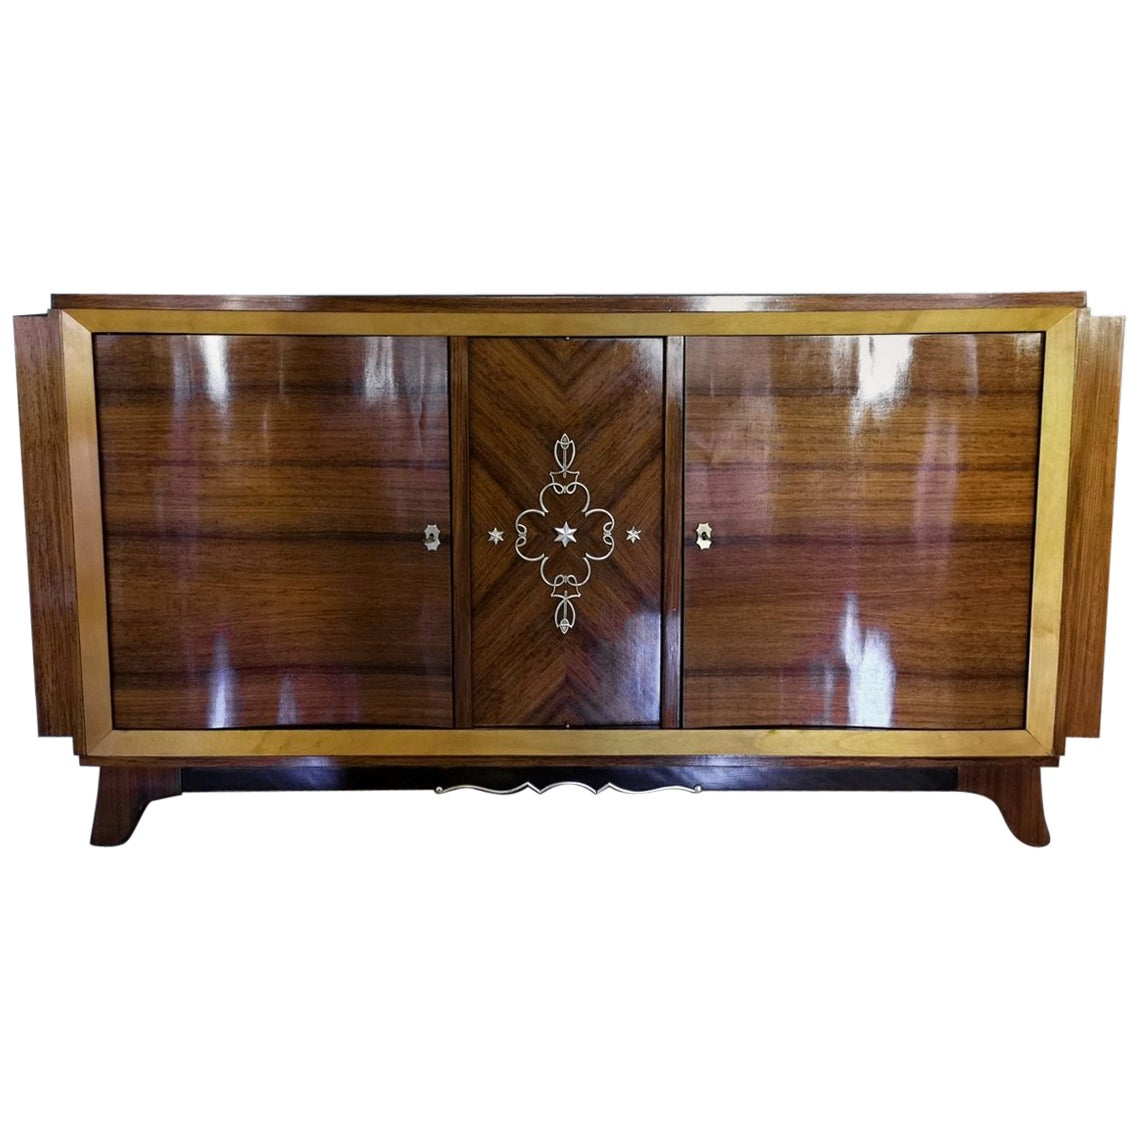 French Mid-century Design Exotic Wood Sideboard